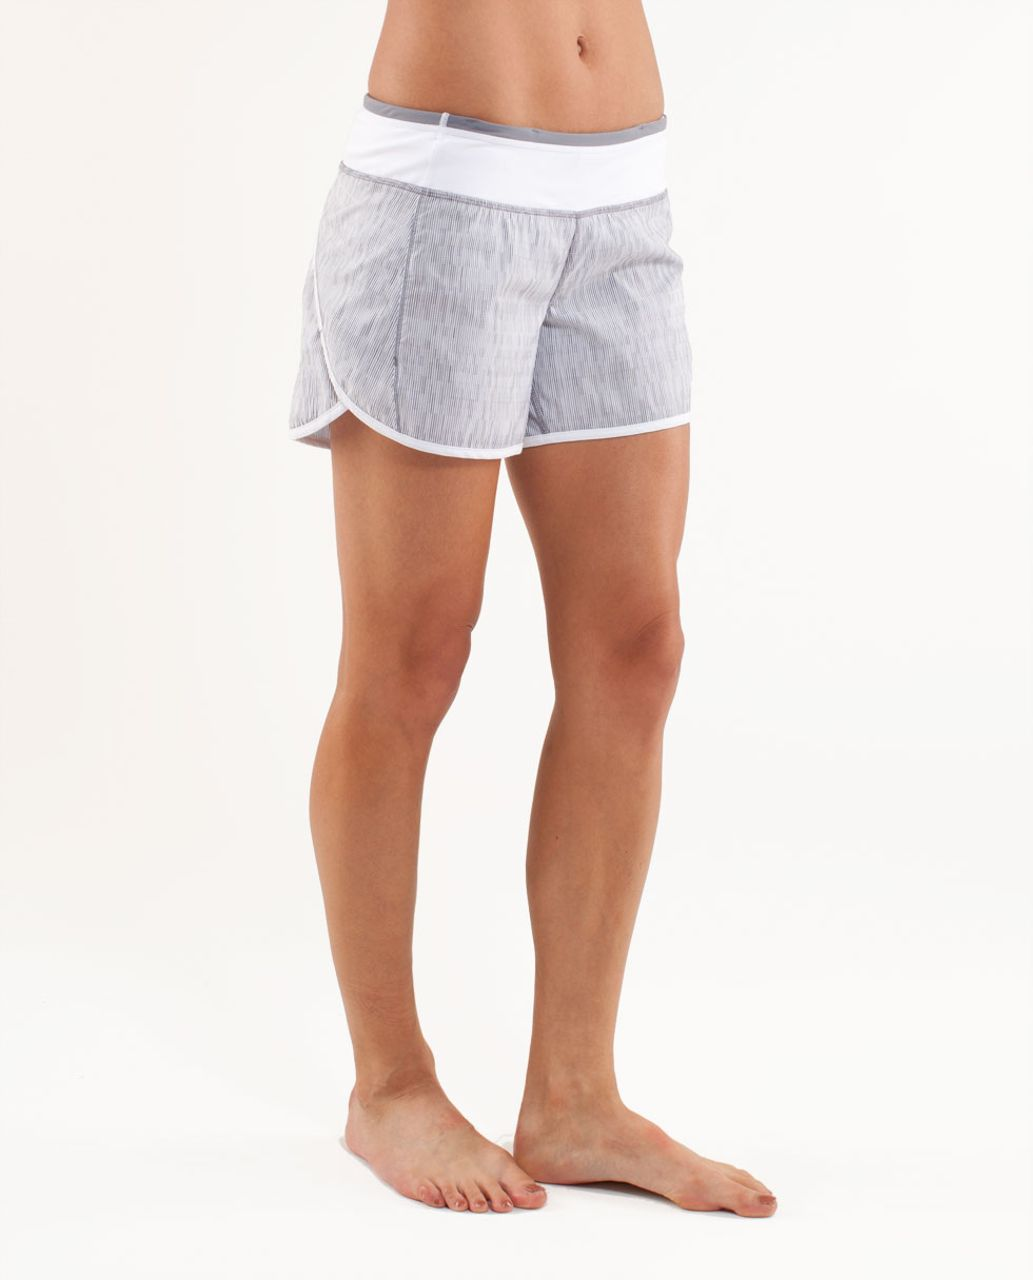 Lululemon Turbo Run Short - Wee Are From Space White Combo /  White /  Heathered Fossil